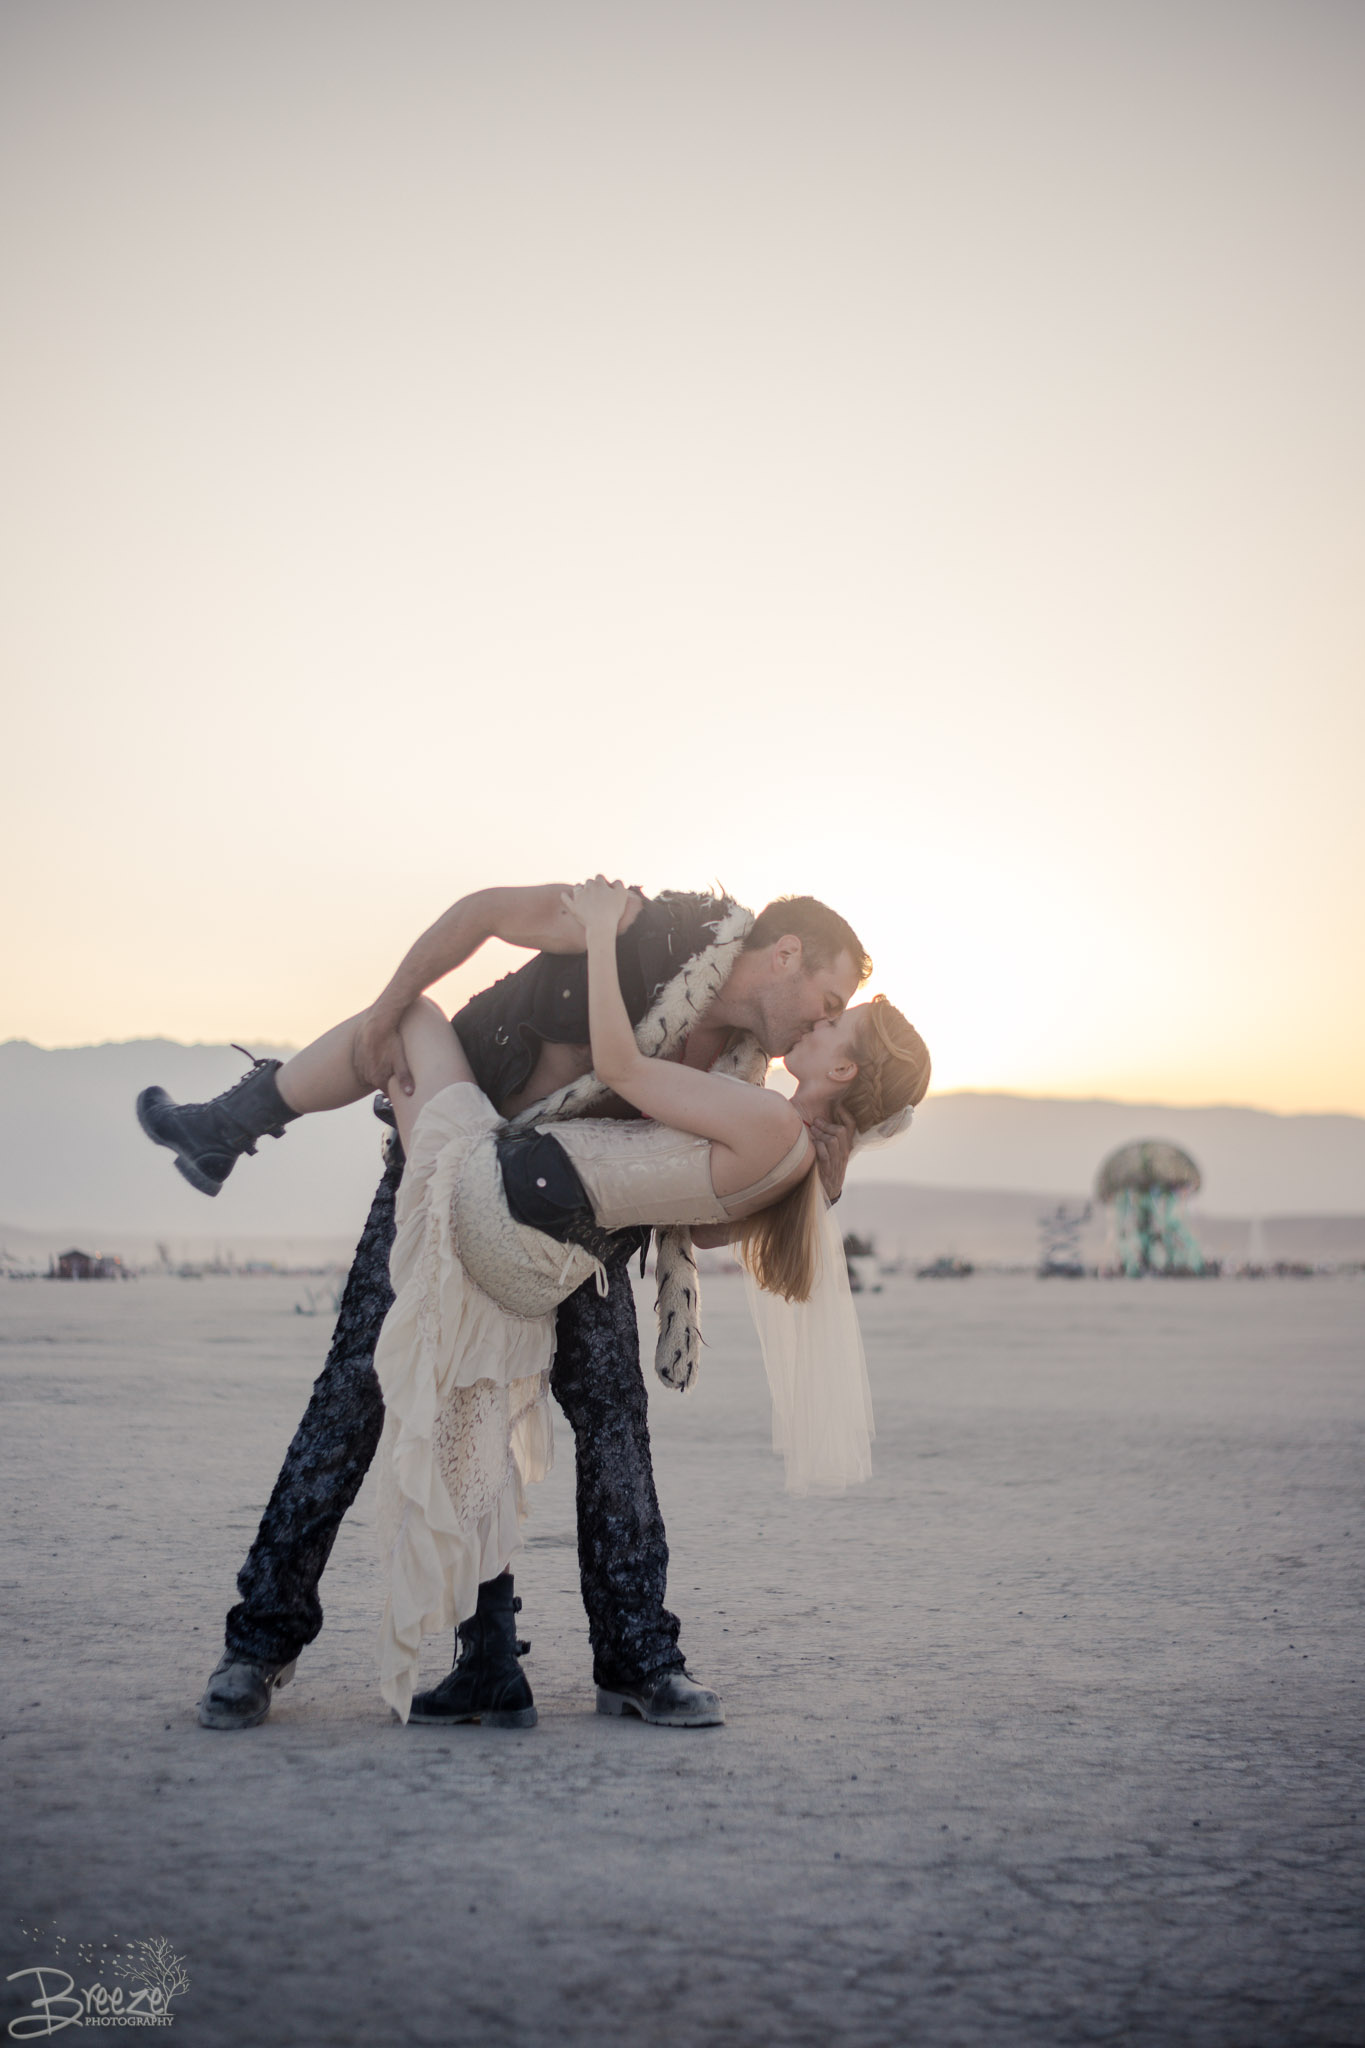 Brie'Ana Breeze Photography & Media - Burning Man 2018-3551.jpg